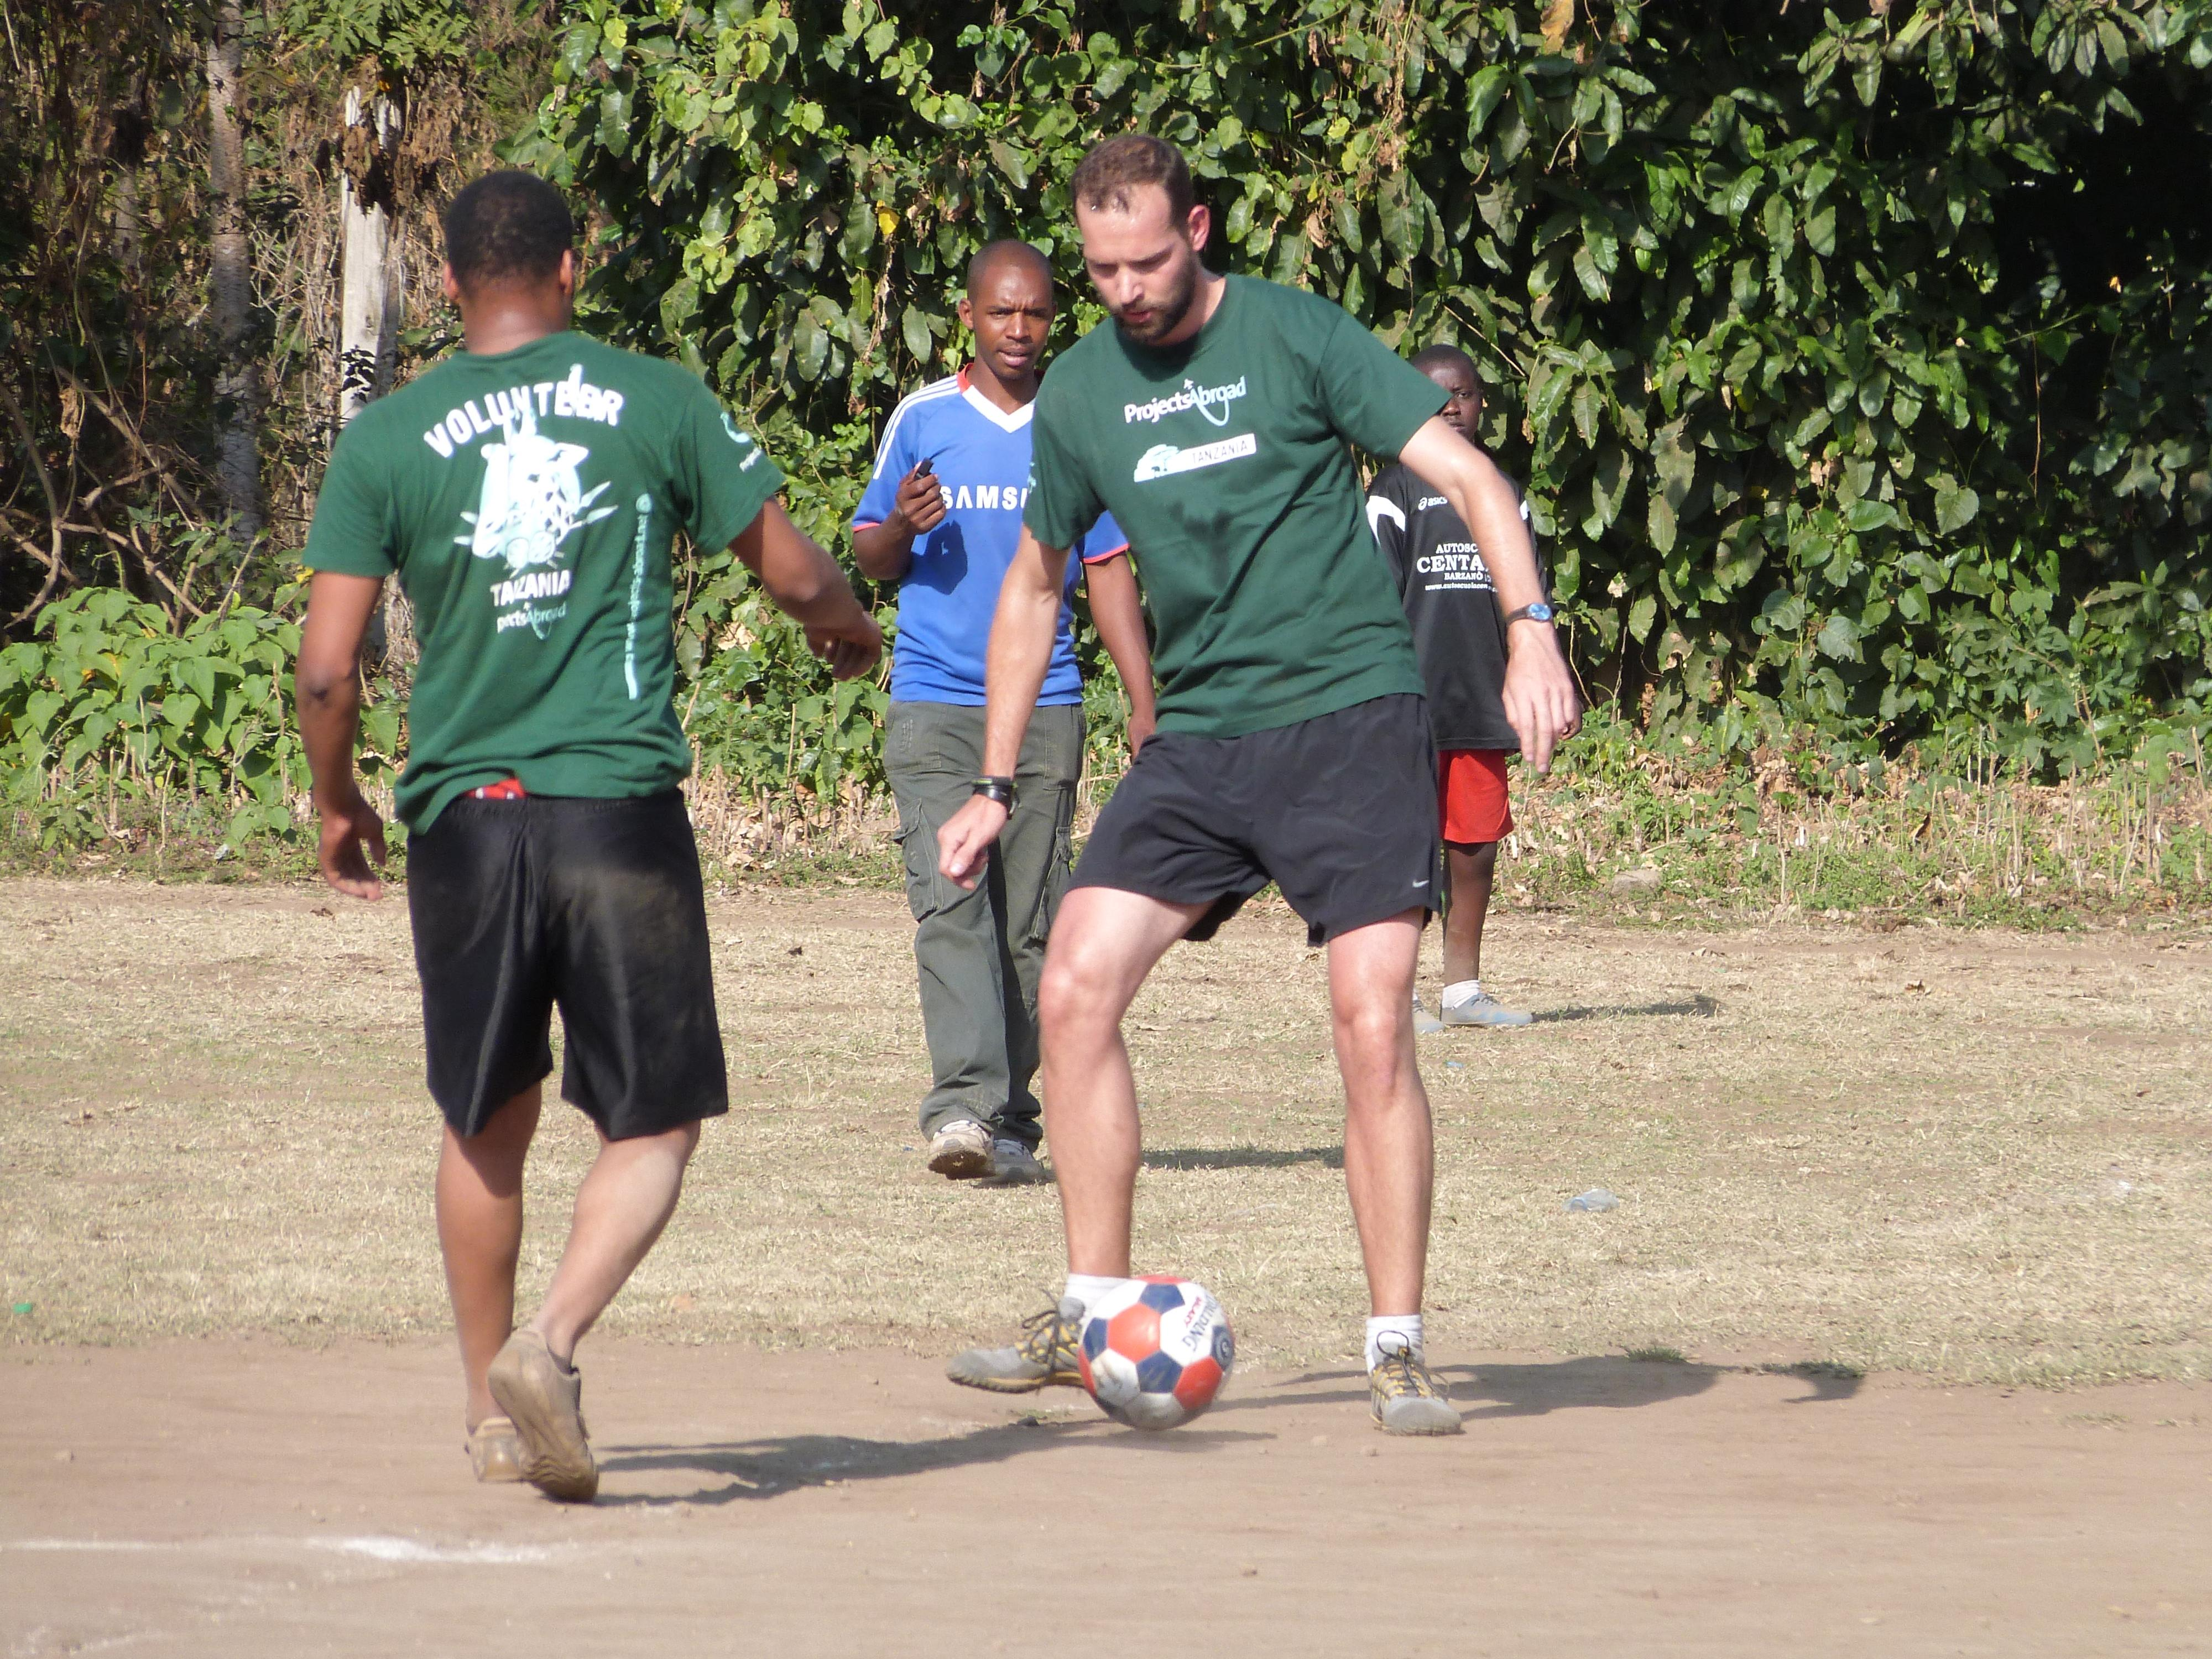 Volunteers practise their passing in preparation to coach sports in schools in Tanzania